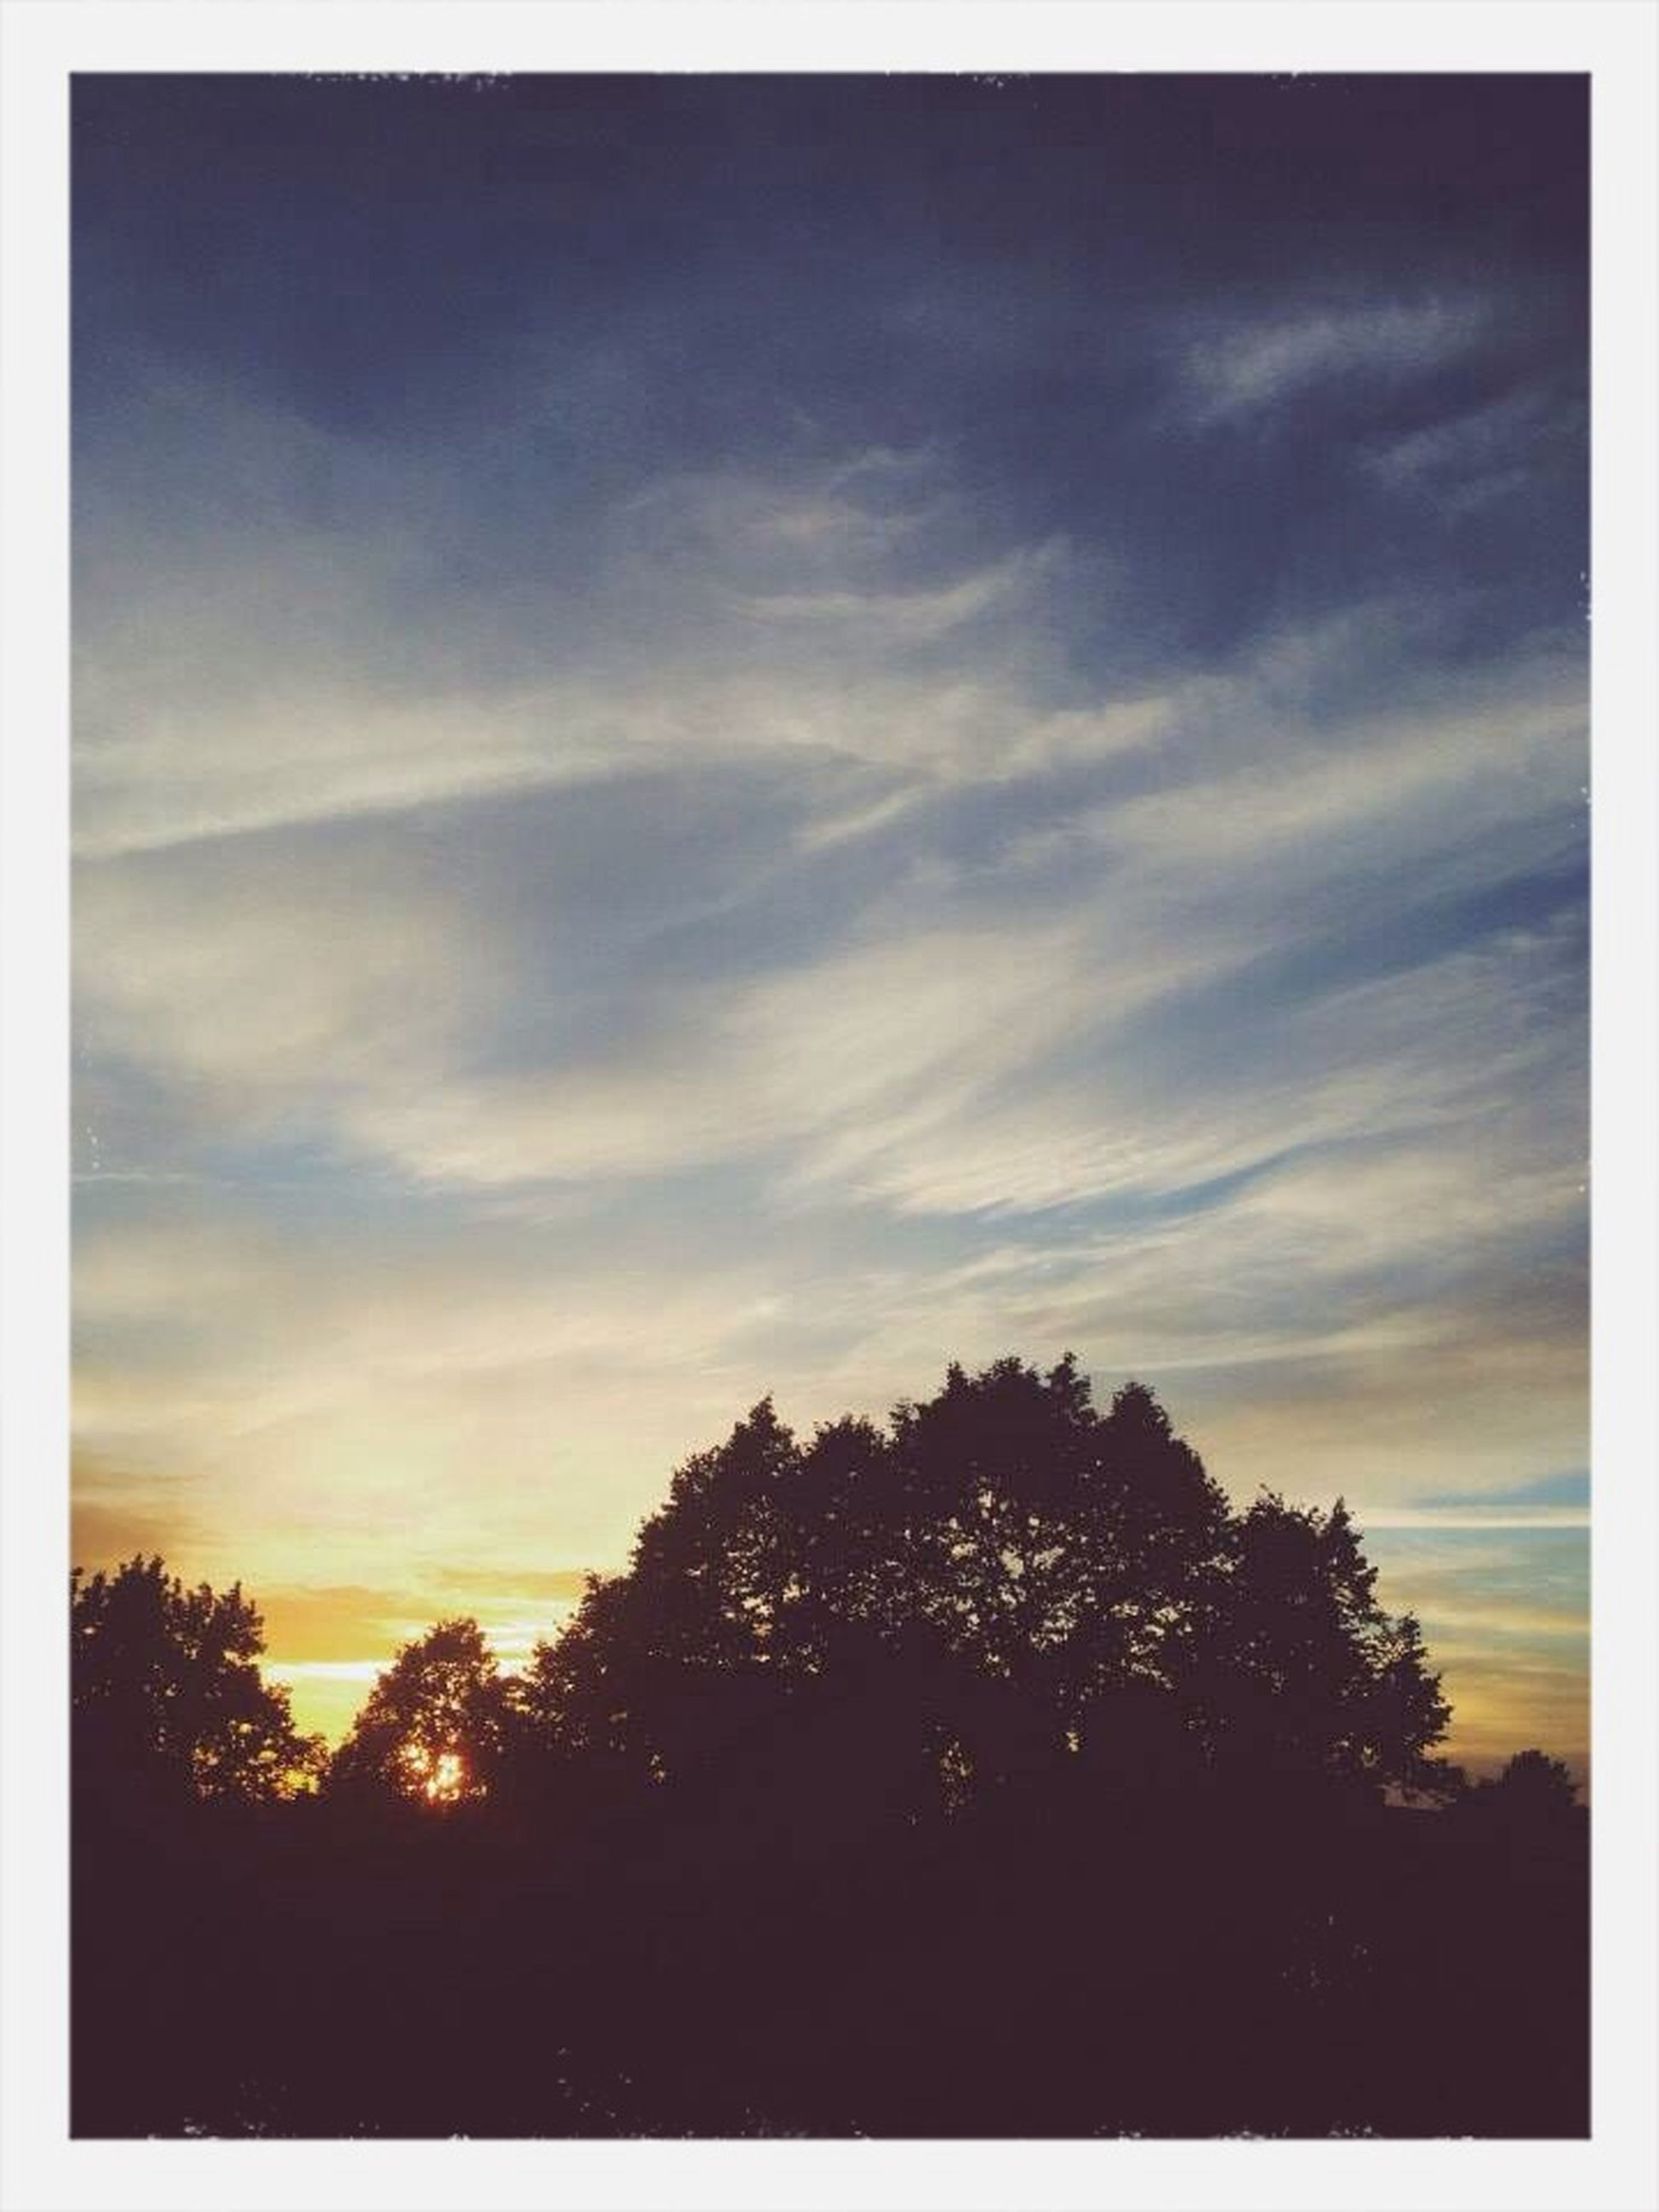 tree, silhouette, sunset, sky, tranquility, tranquil scene, beauty in nature, scenics, transfer print, nature, cloud - sky, auto post production filter, idyllic, growth, cloud, landscape, low angle view, orange color, outdoors, no people